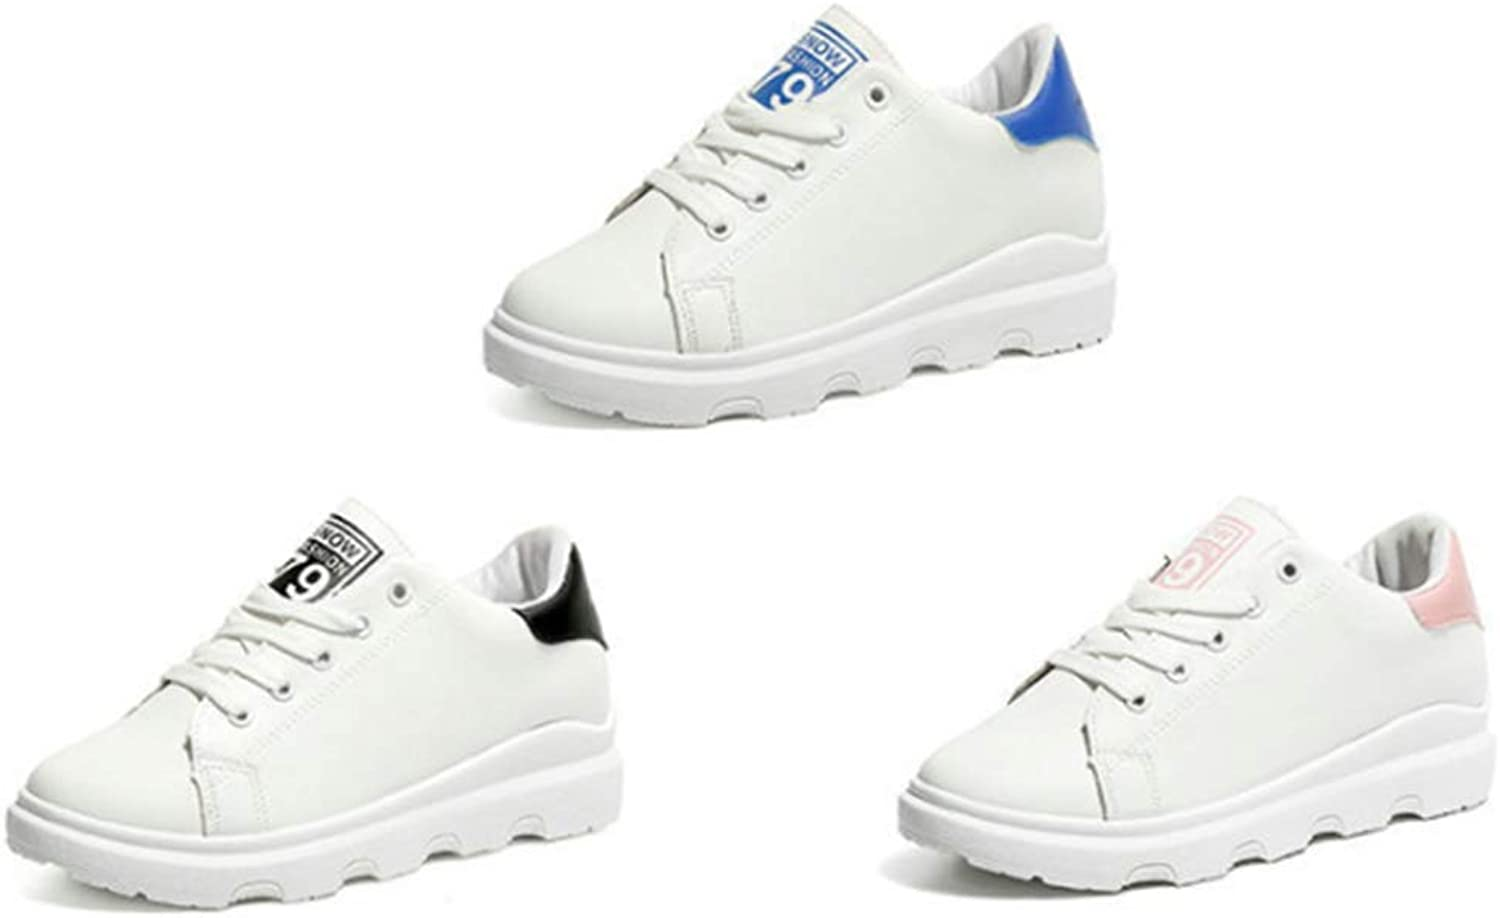 T-JULY Women's Fashion Wedges Sneakers Running Sports White Breathable shoes Slip-on Dress Casual Walking shoes